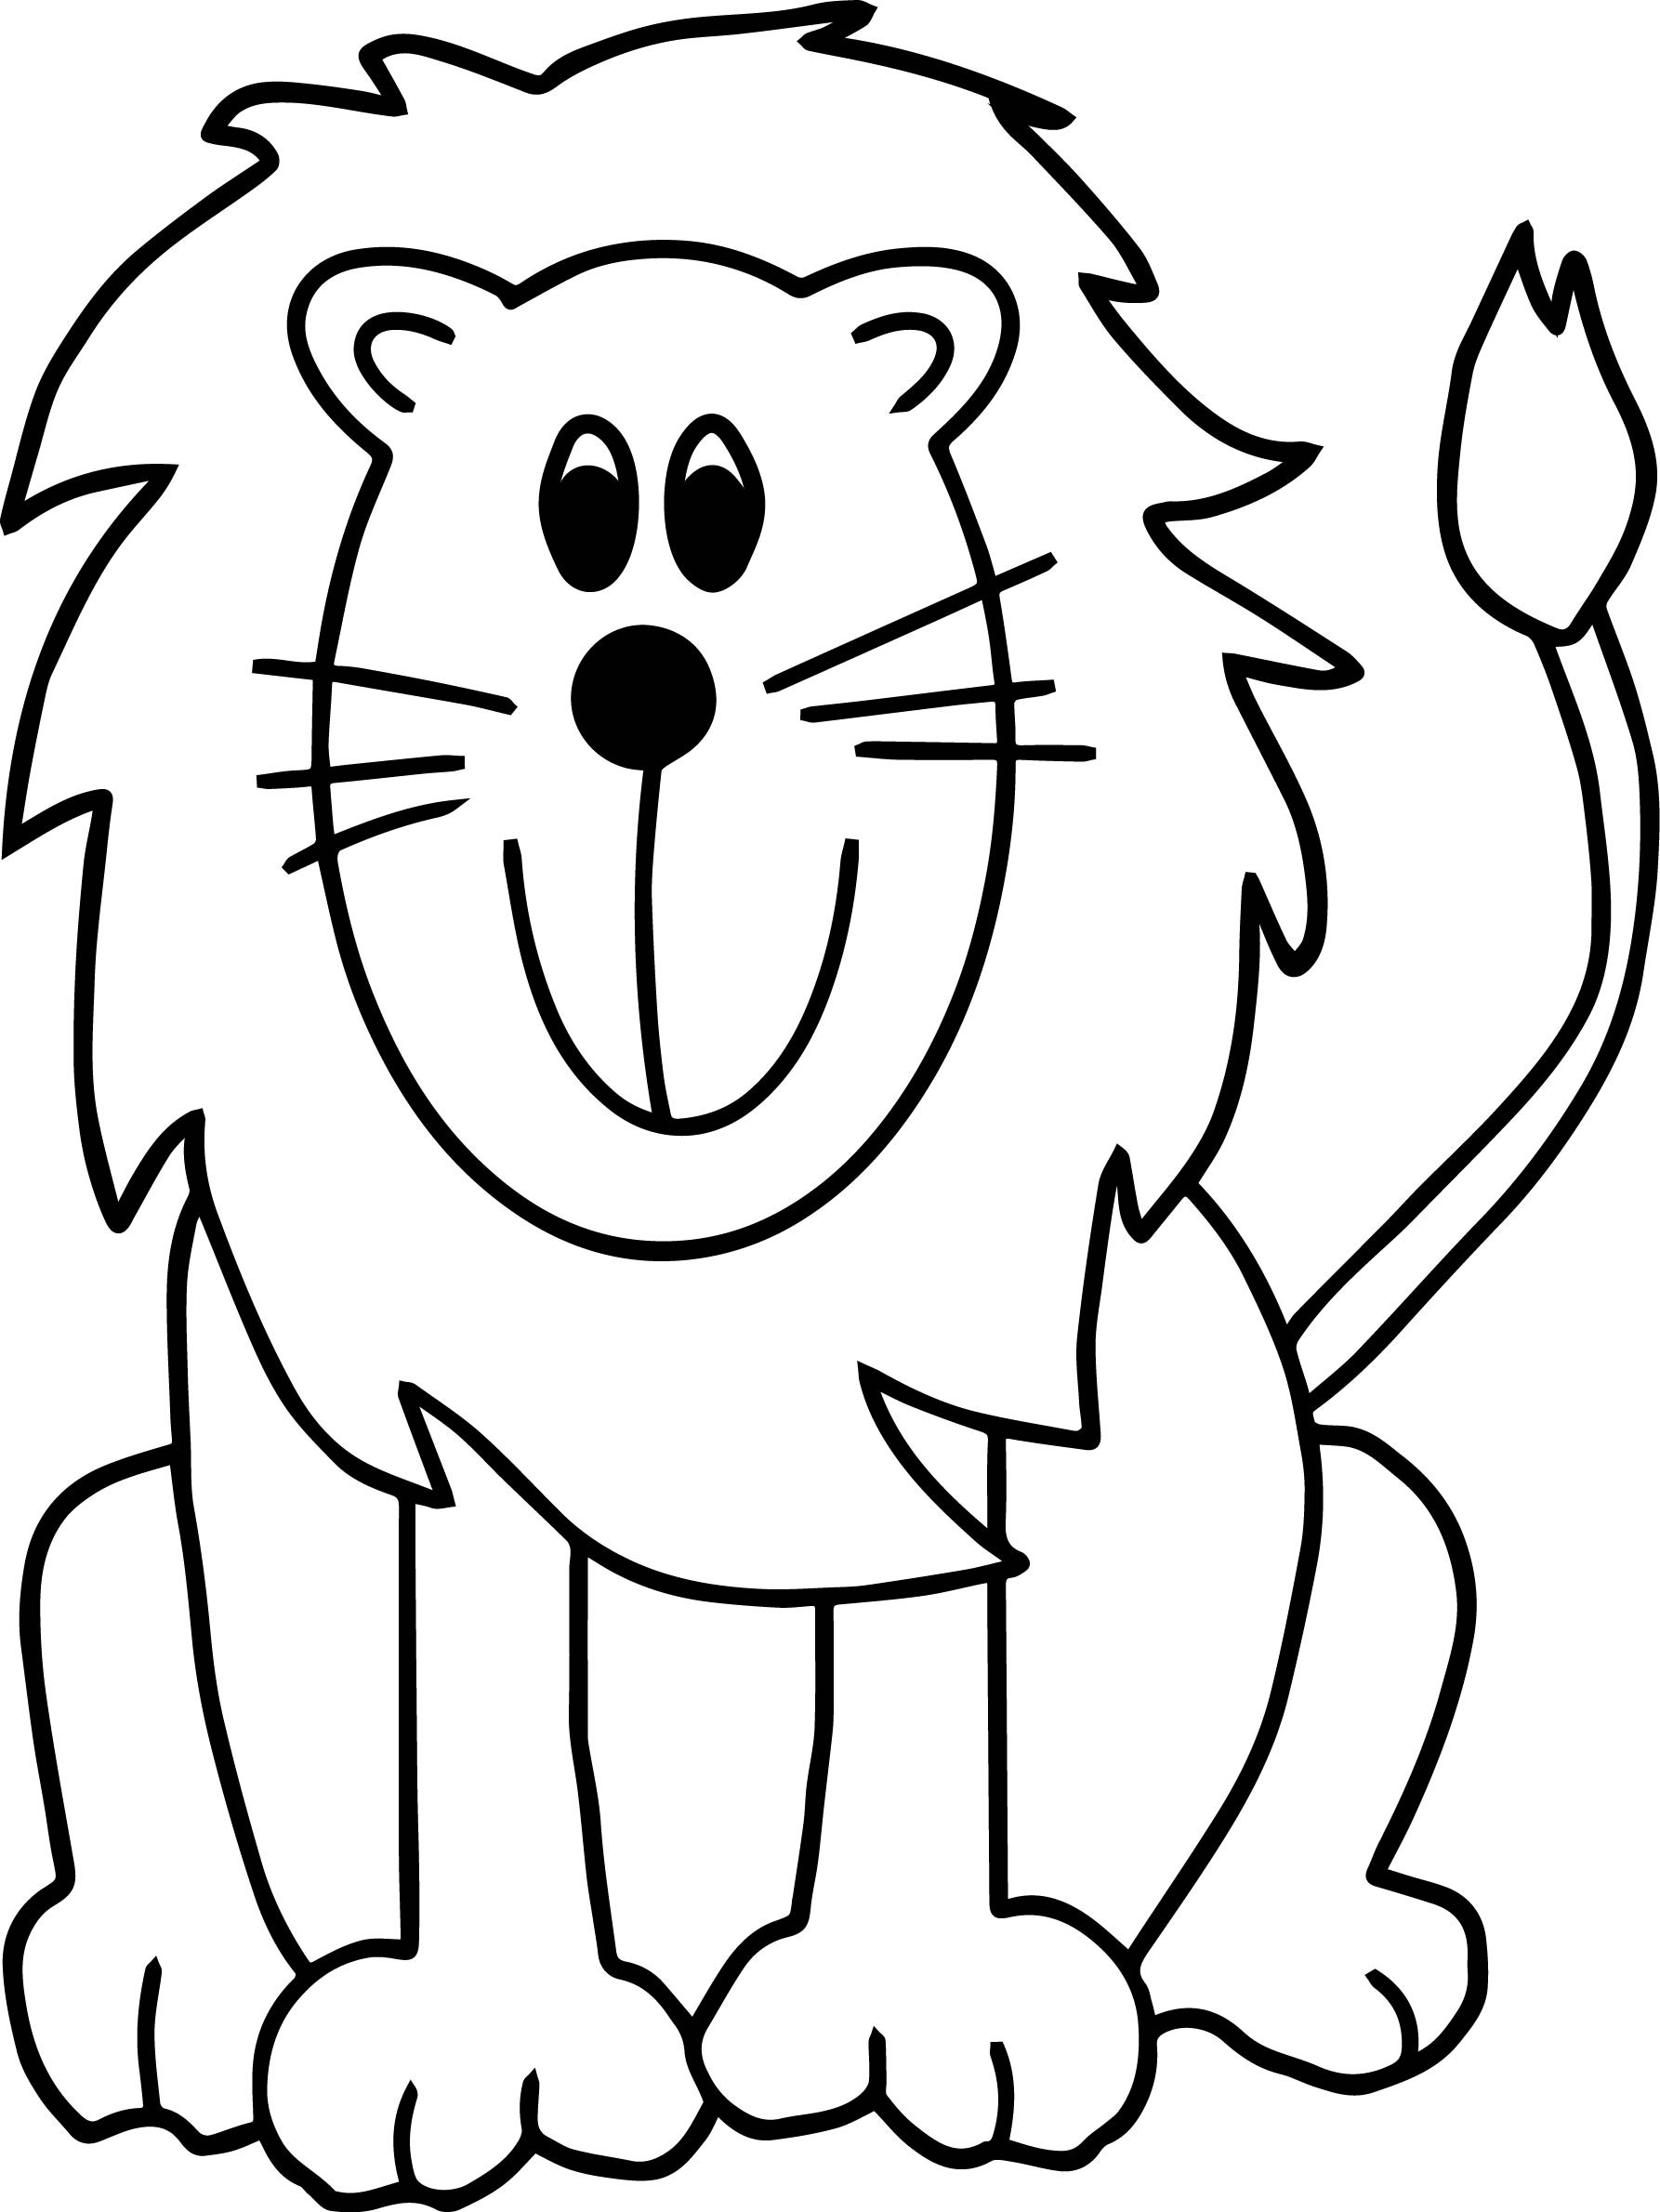 zoo coloring 39 pdf printable zoo animal pictures printable hd docx zoo coloring